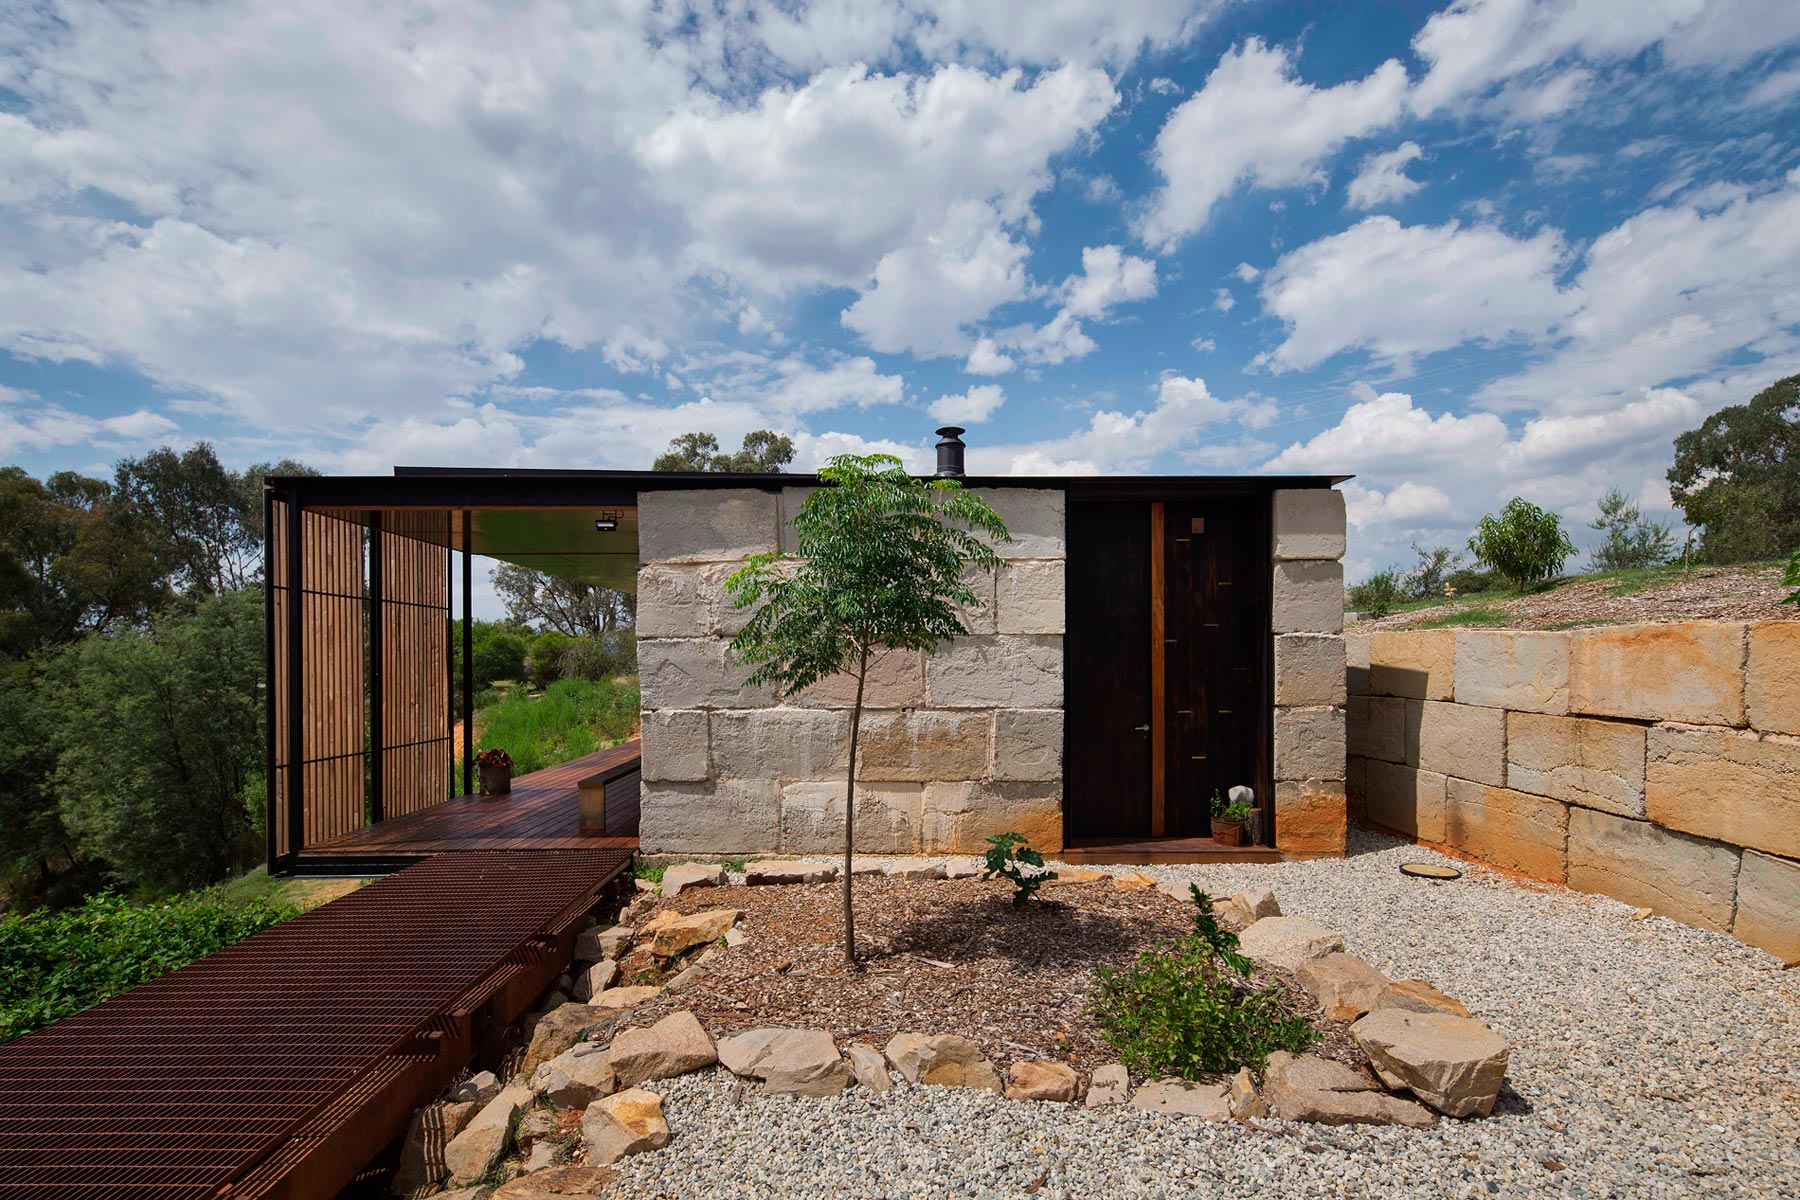 Sawmill House built of Reclaimed Concrete Blocks Used by ARCHIER-13